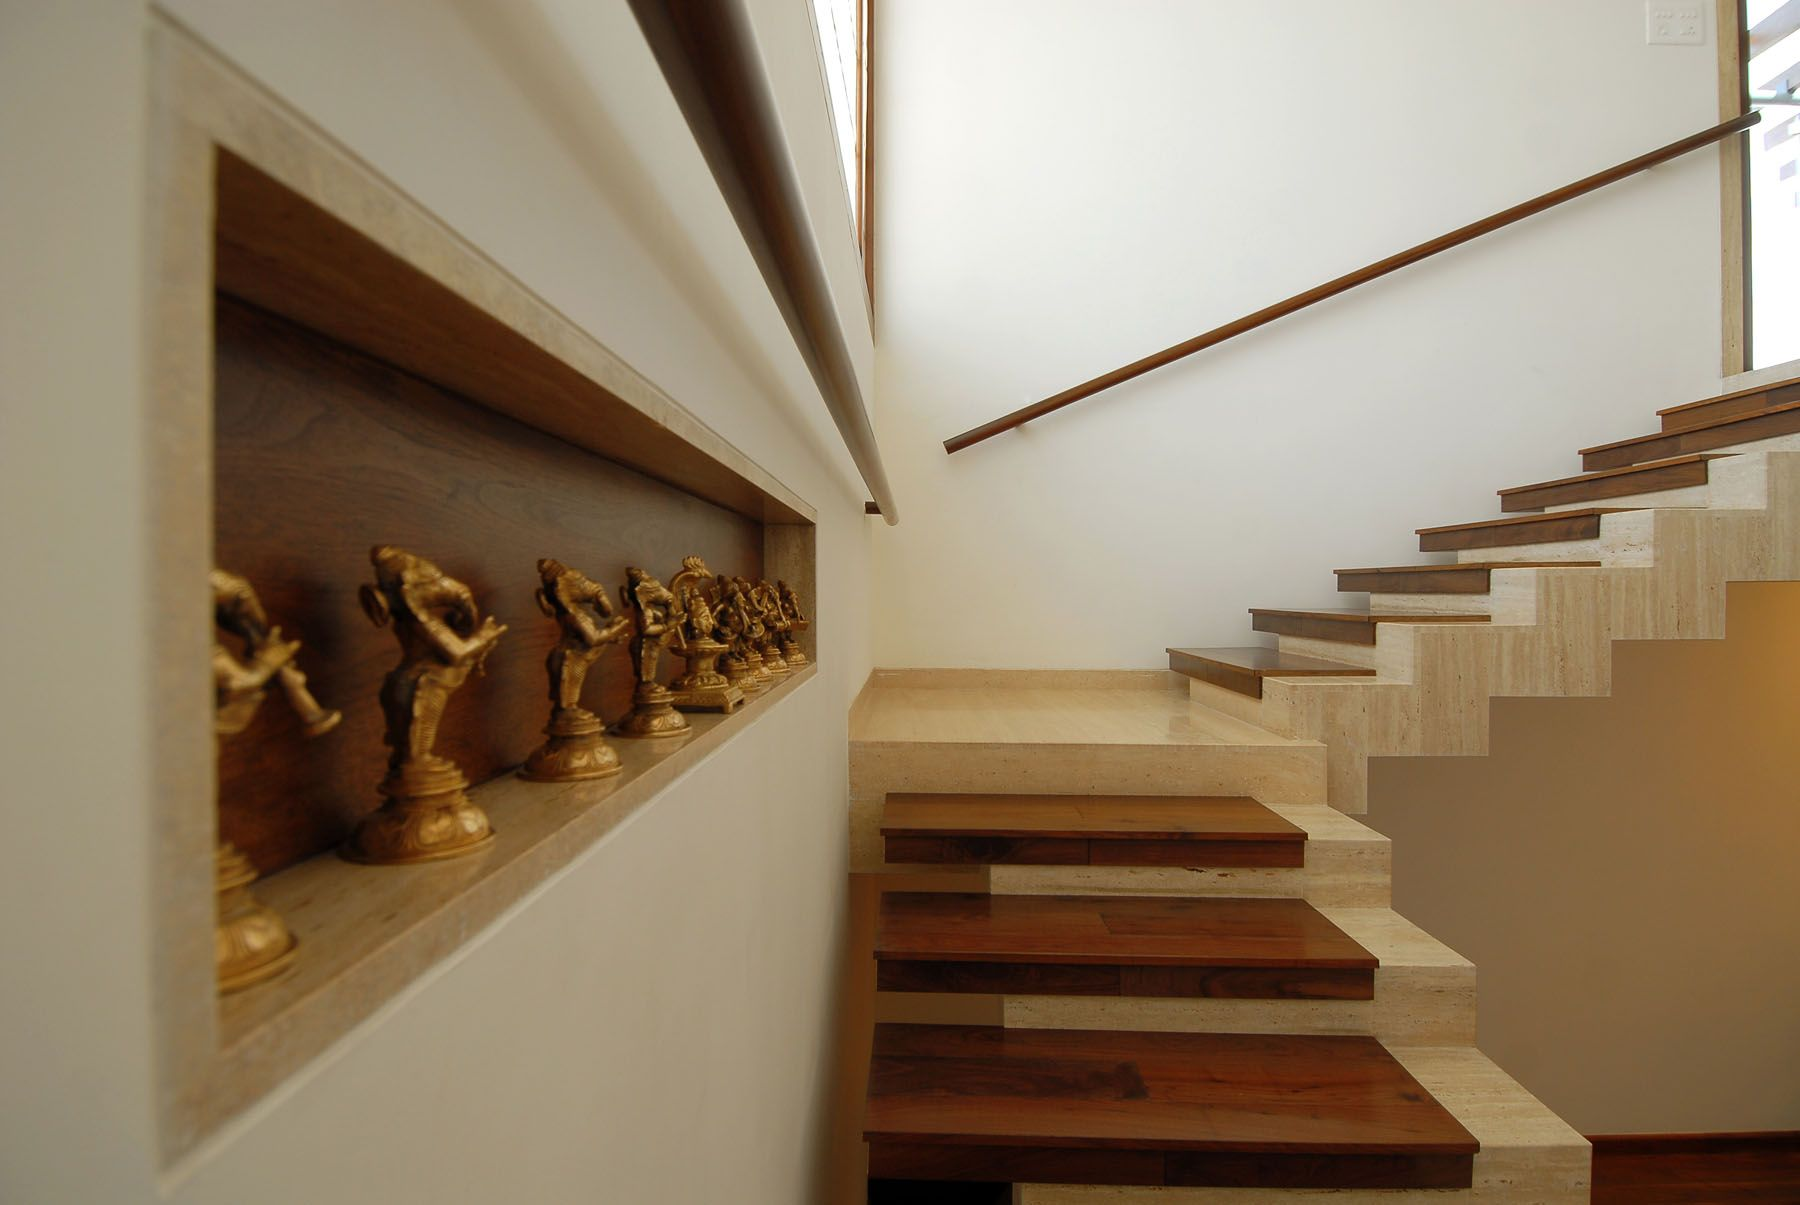 Kitchen cabinet doors in bangalore first time in india architect - Unique Stairs Bangalore Duplex Apartment By Zz Architects